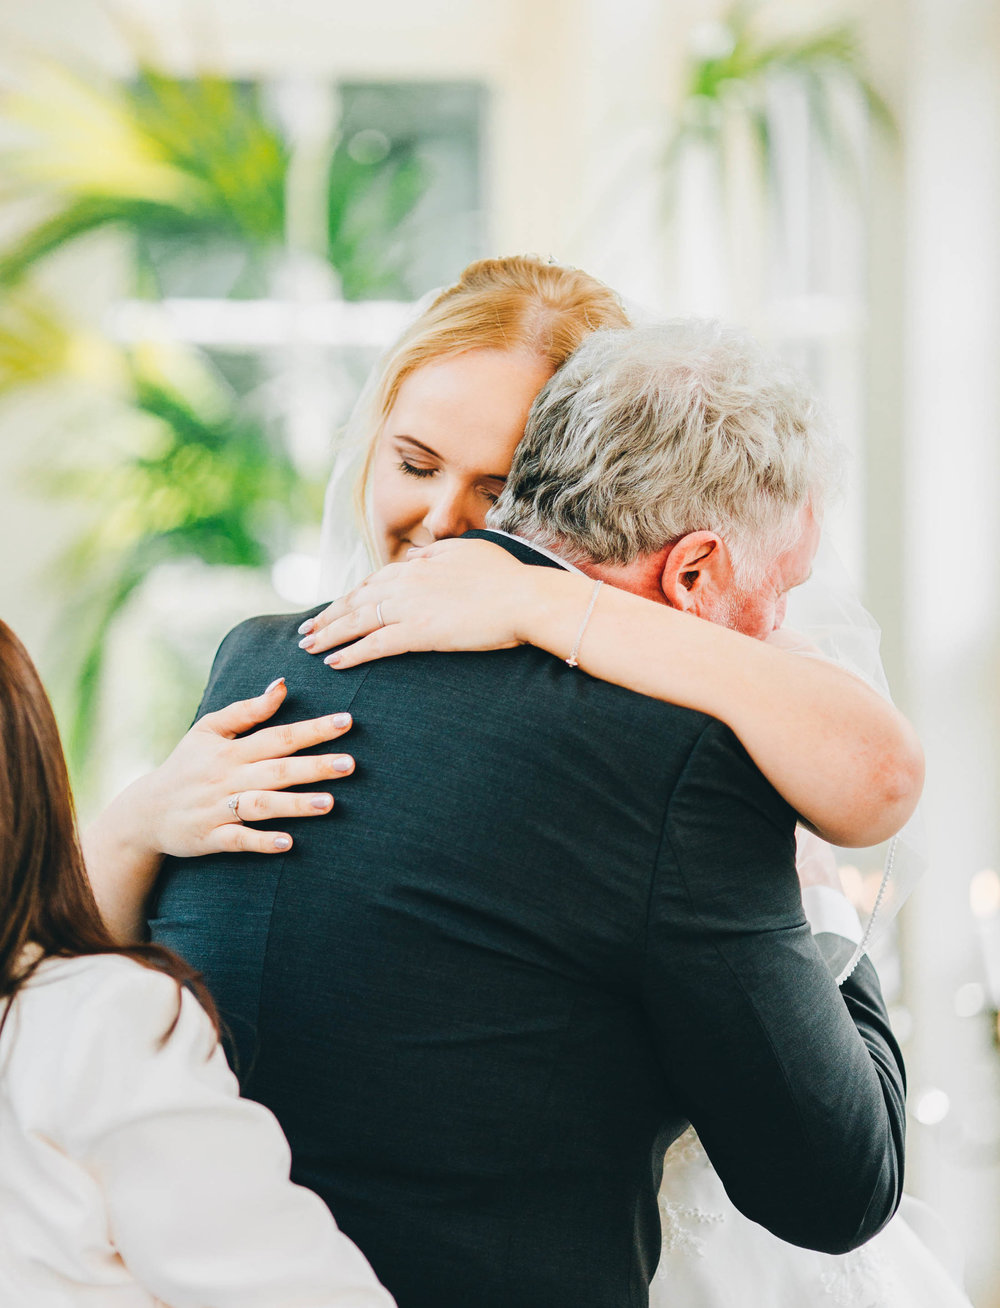 Hugs from the bride and her father. Documentary wedding photographer. Relaxed wedding.